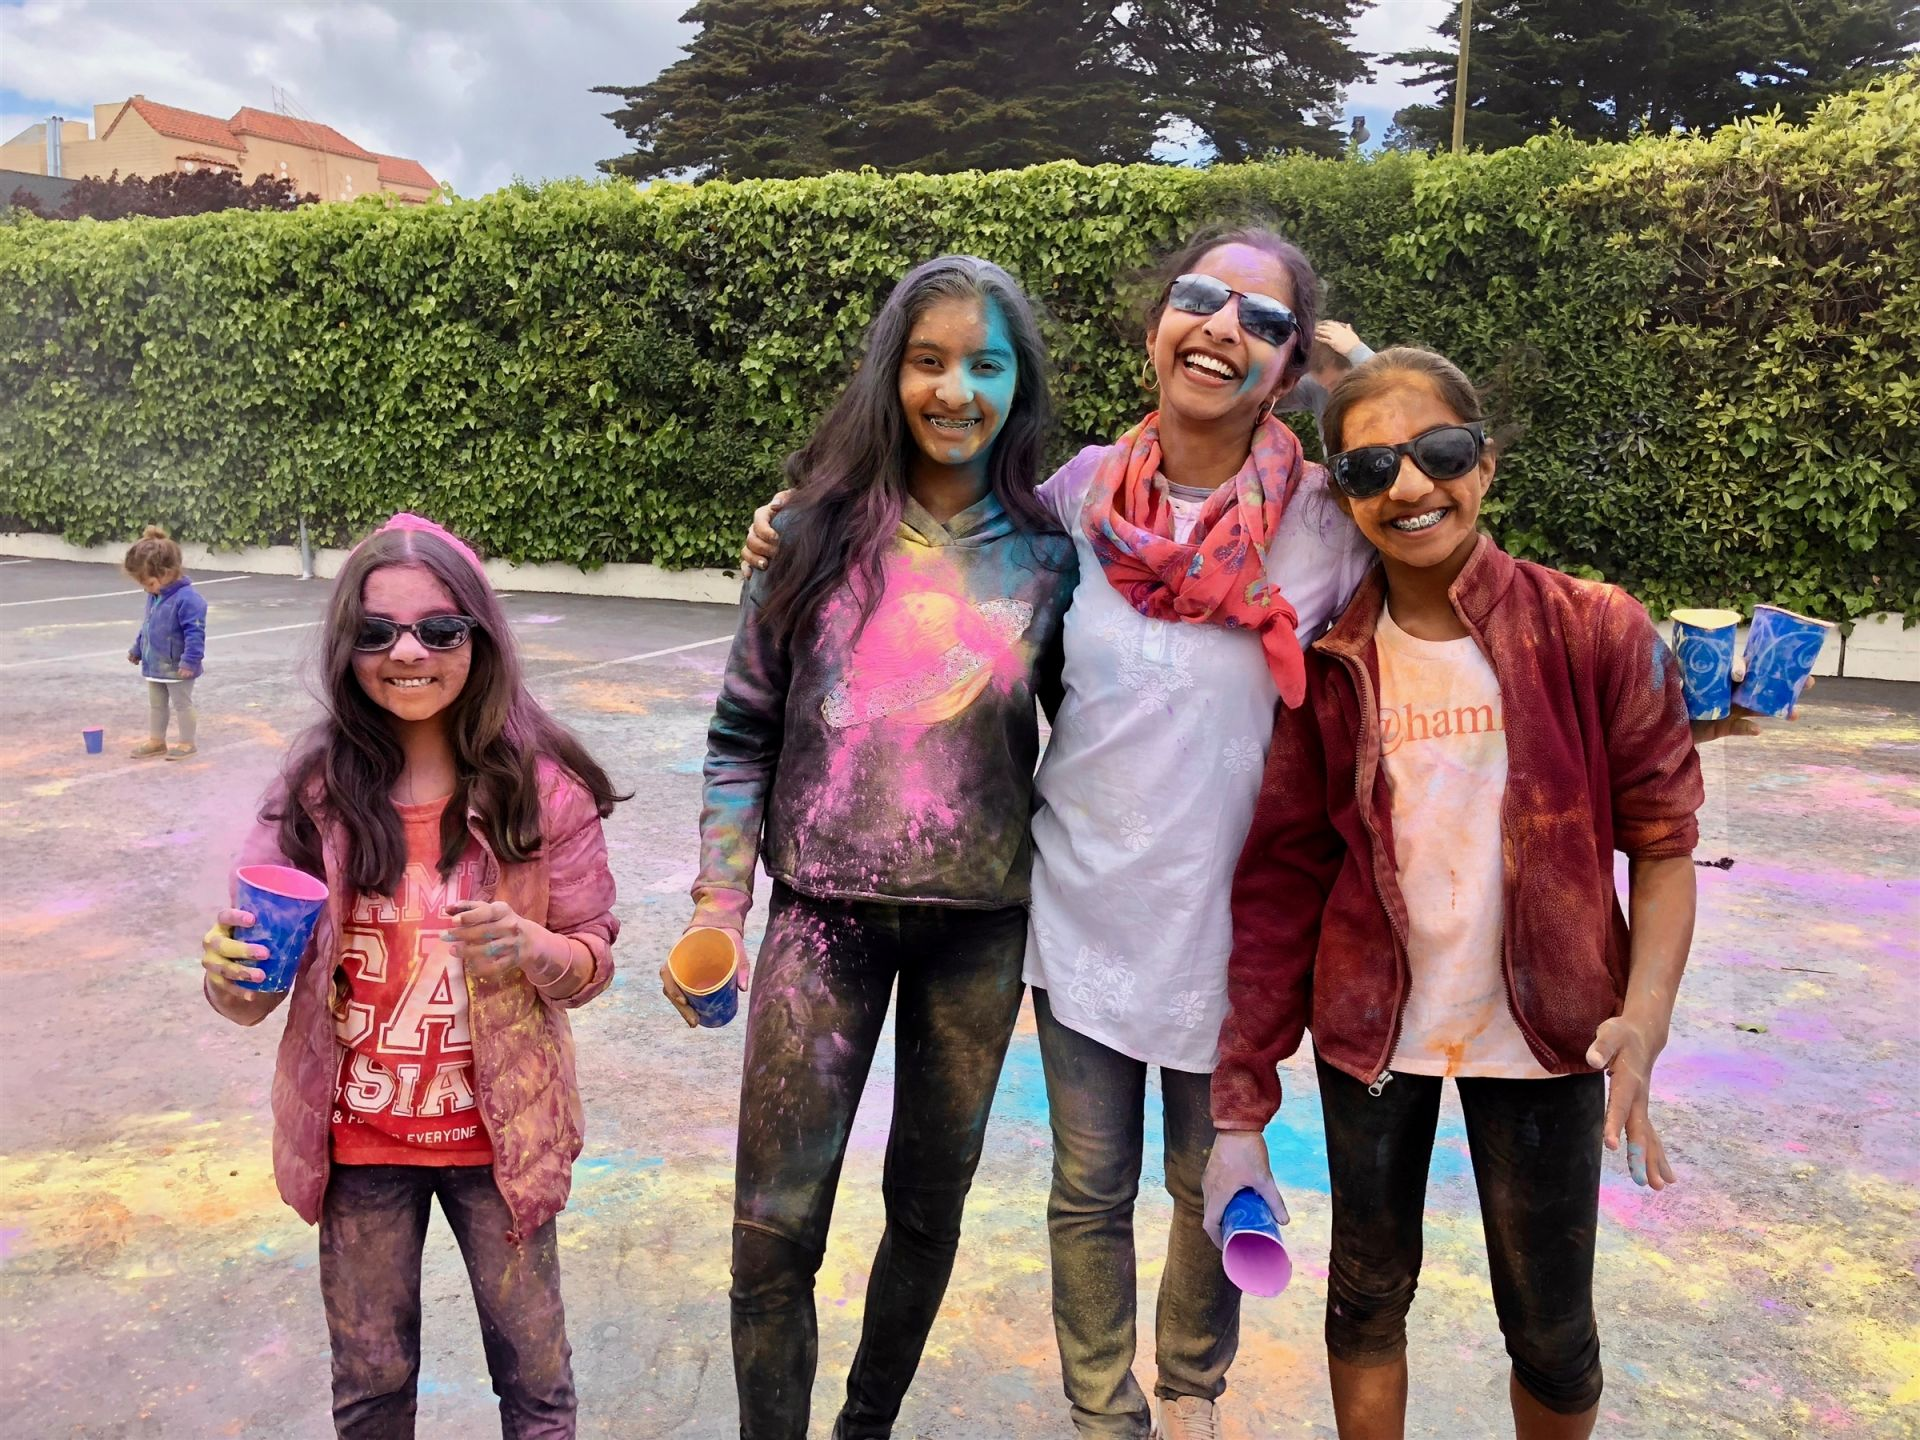 Hamlin students and families celebrating Holi, the Indian Festival of Color